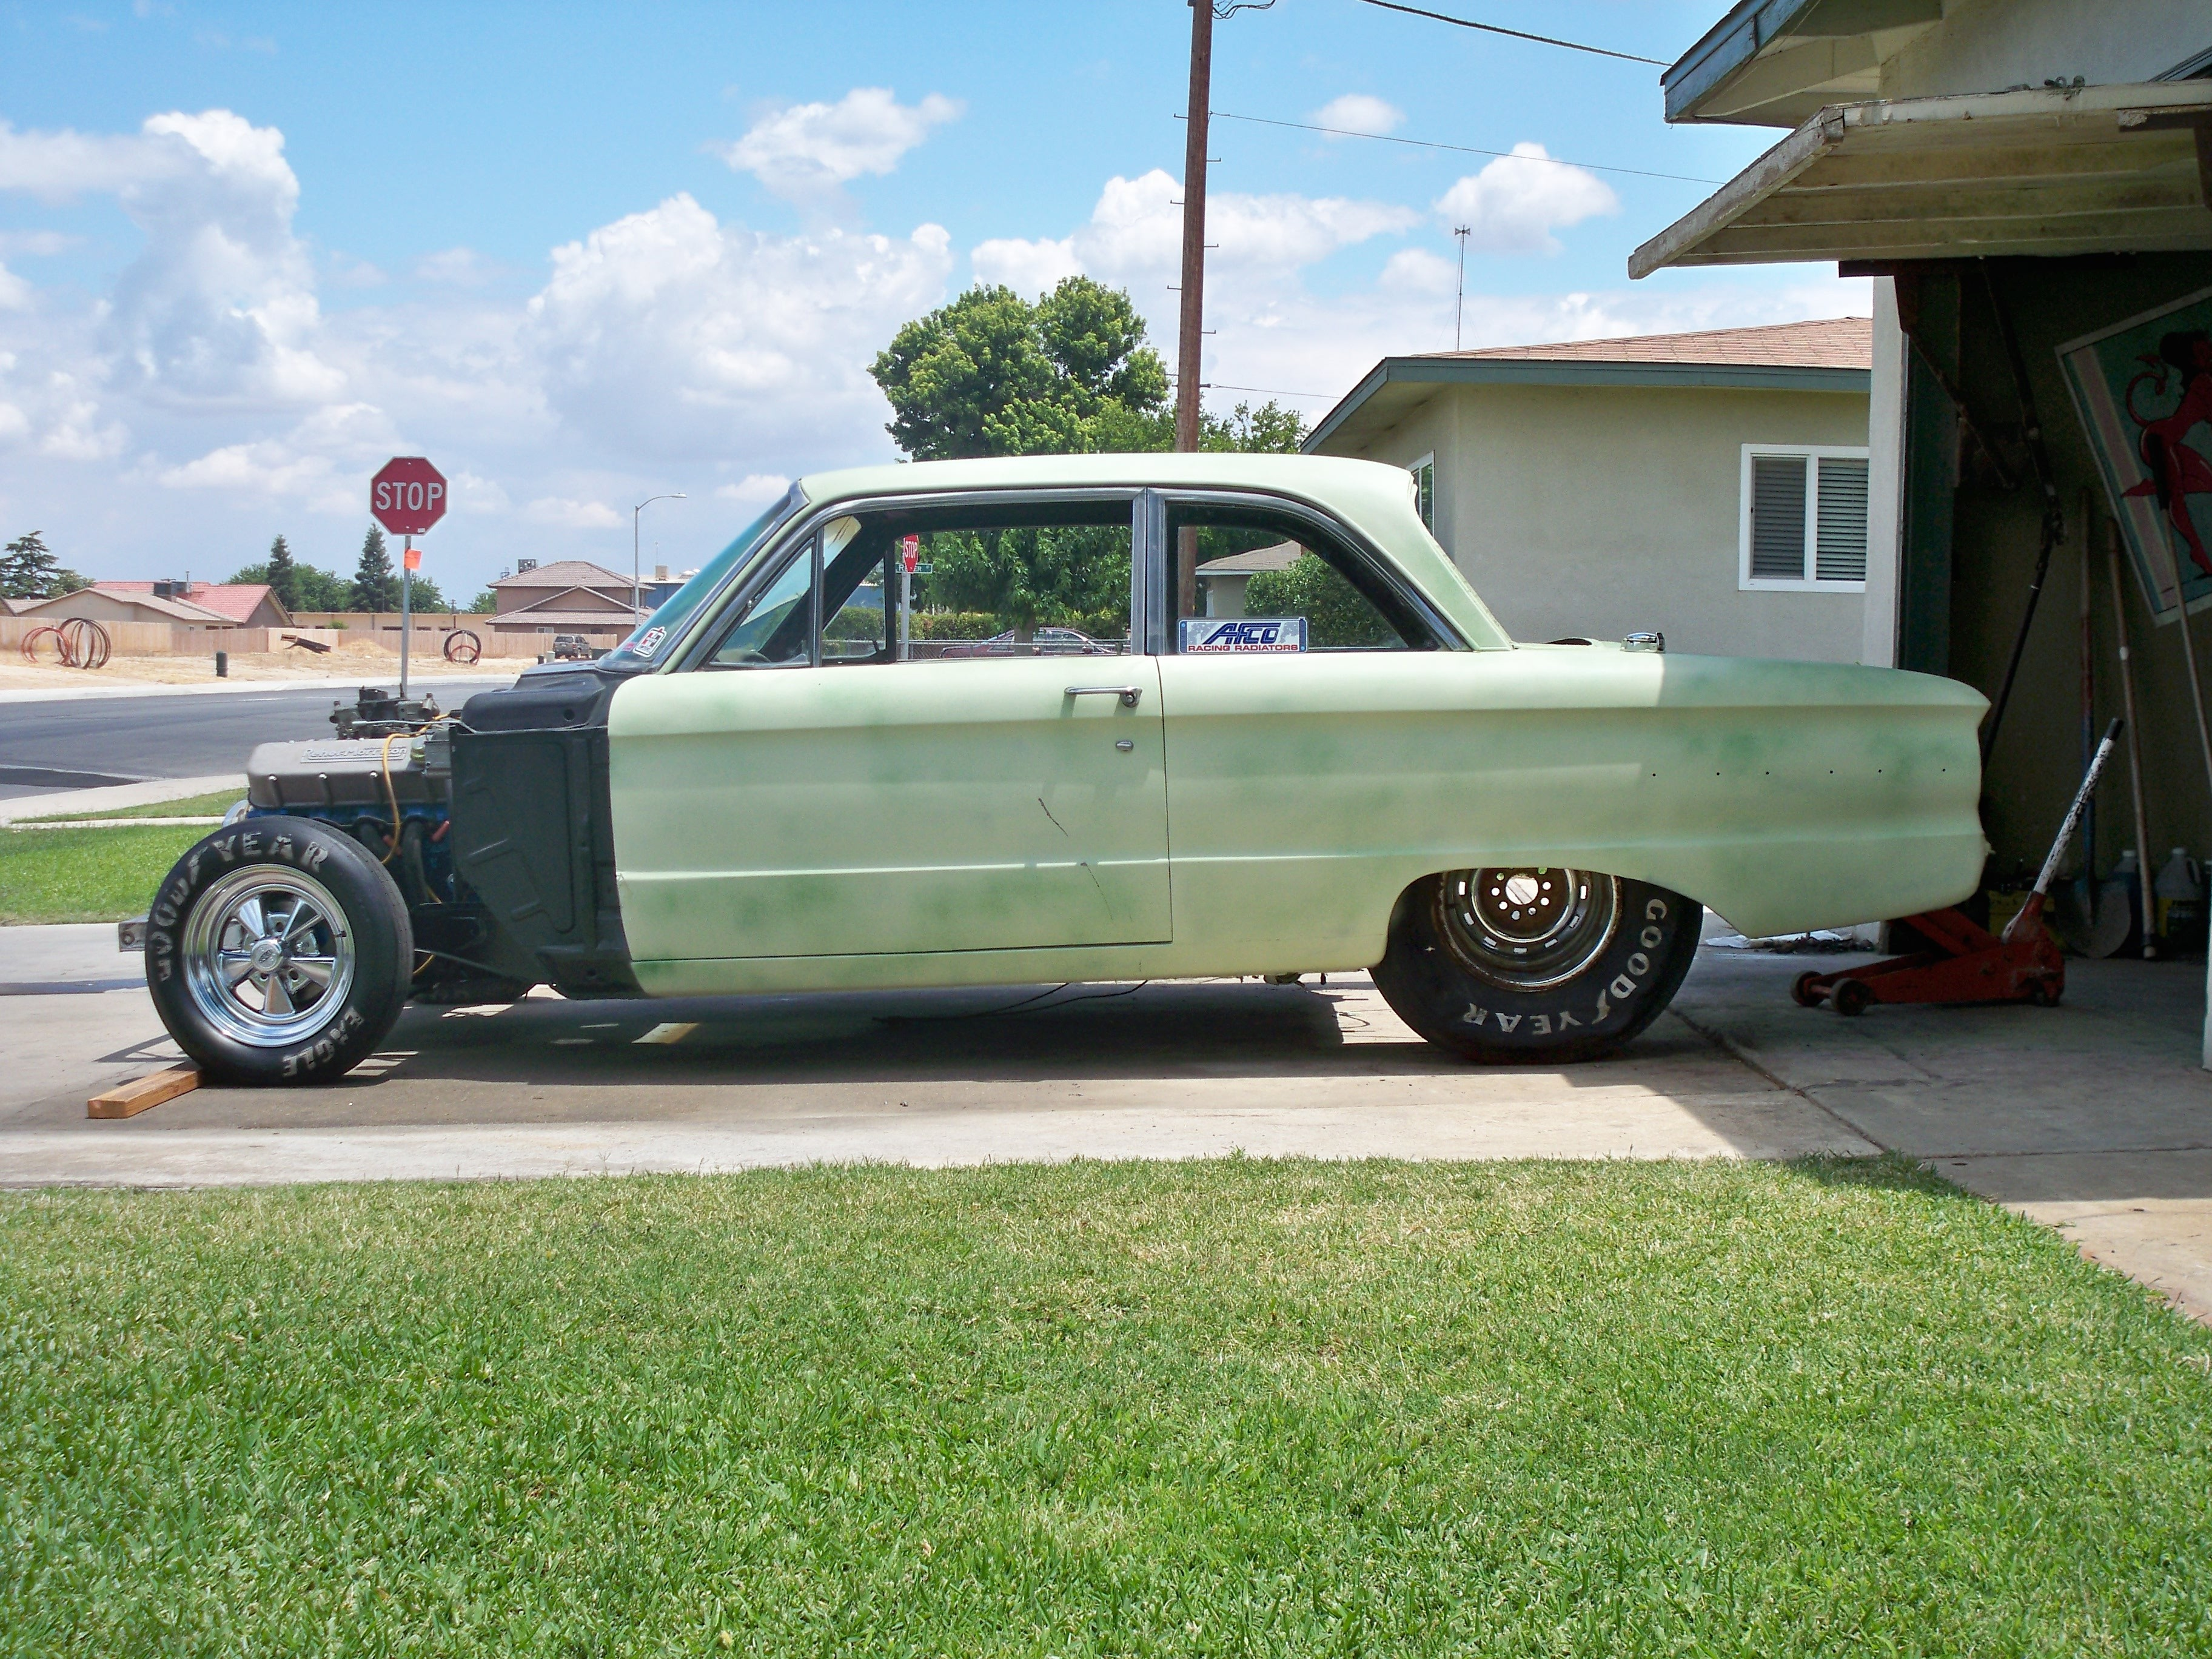 chopped39's 1960 Ford Falcon